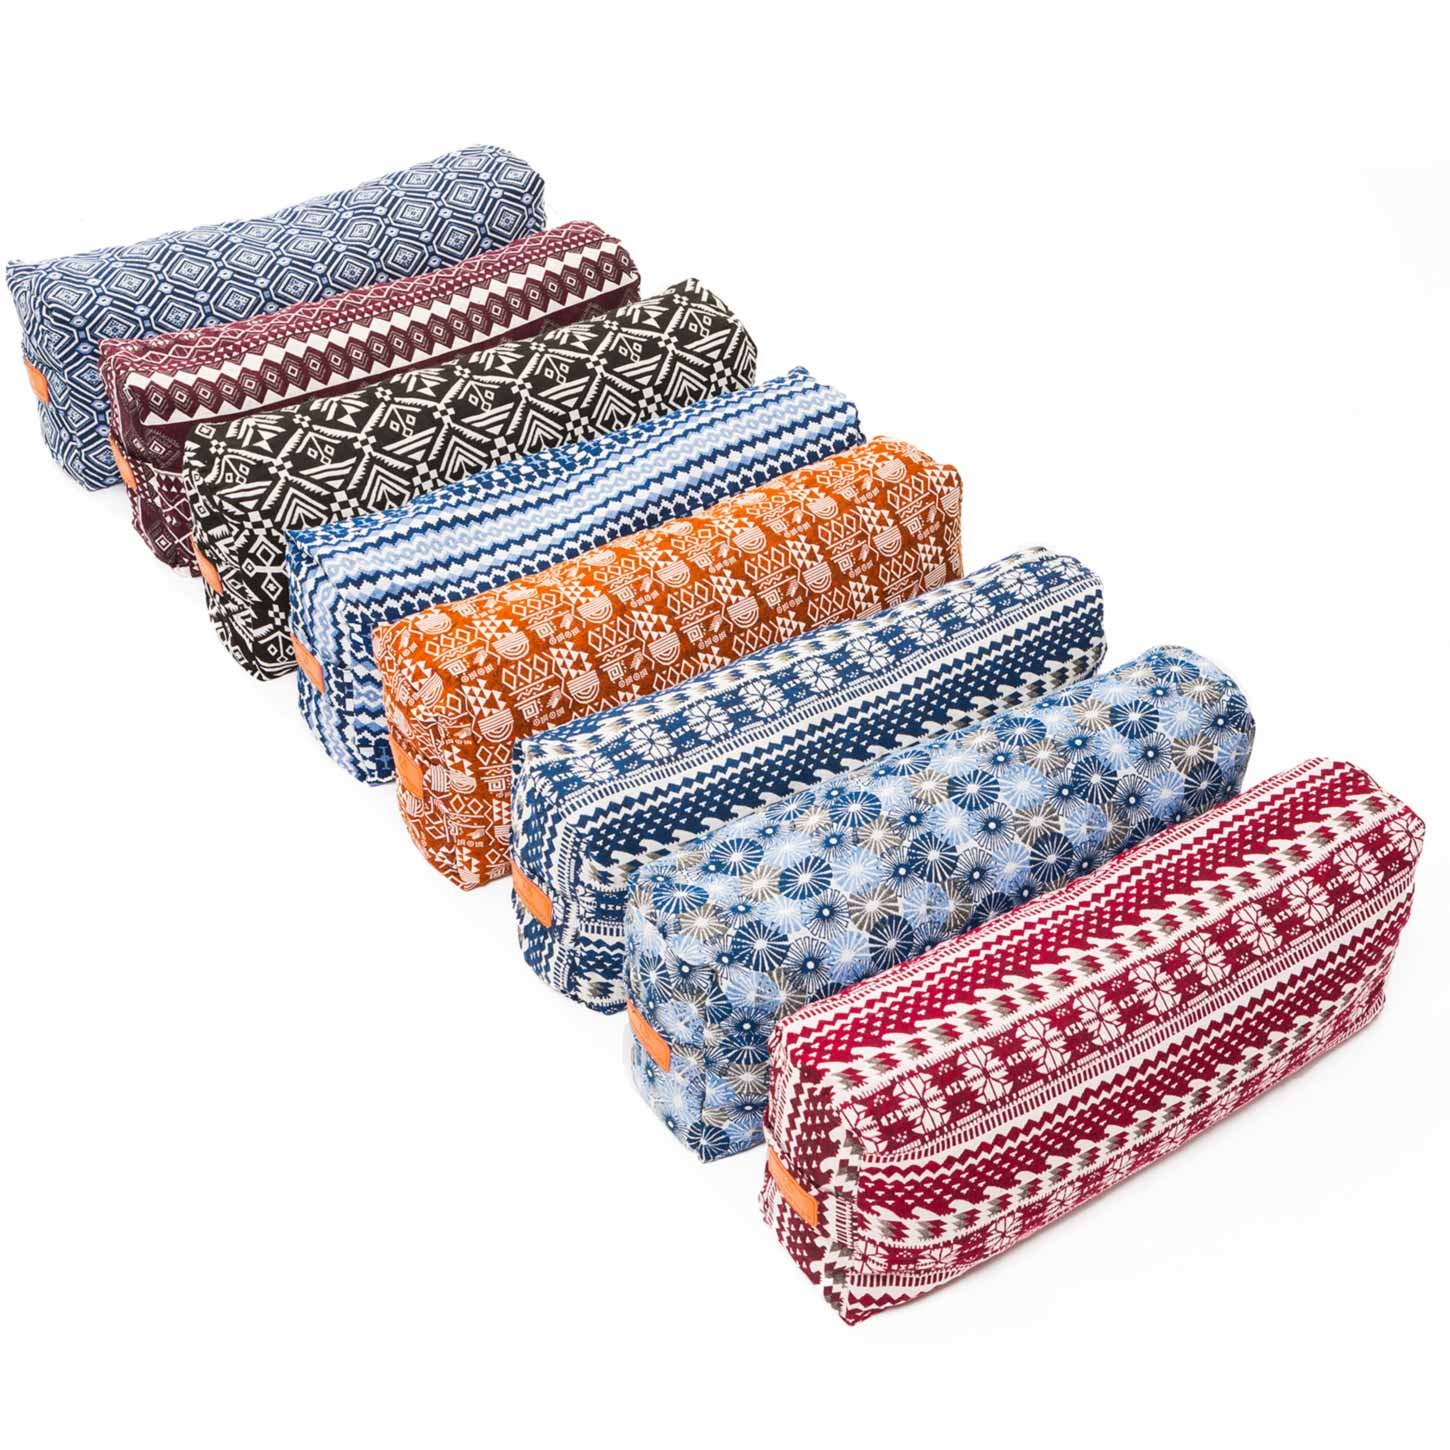 pillows bedroom your on yoga sew for bolster how neck pillow decor to cover roll house outstanding